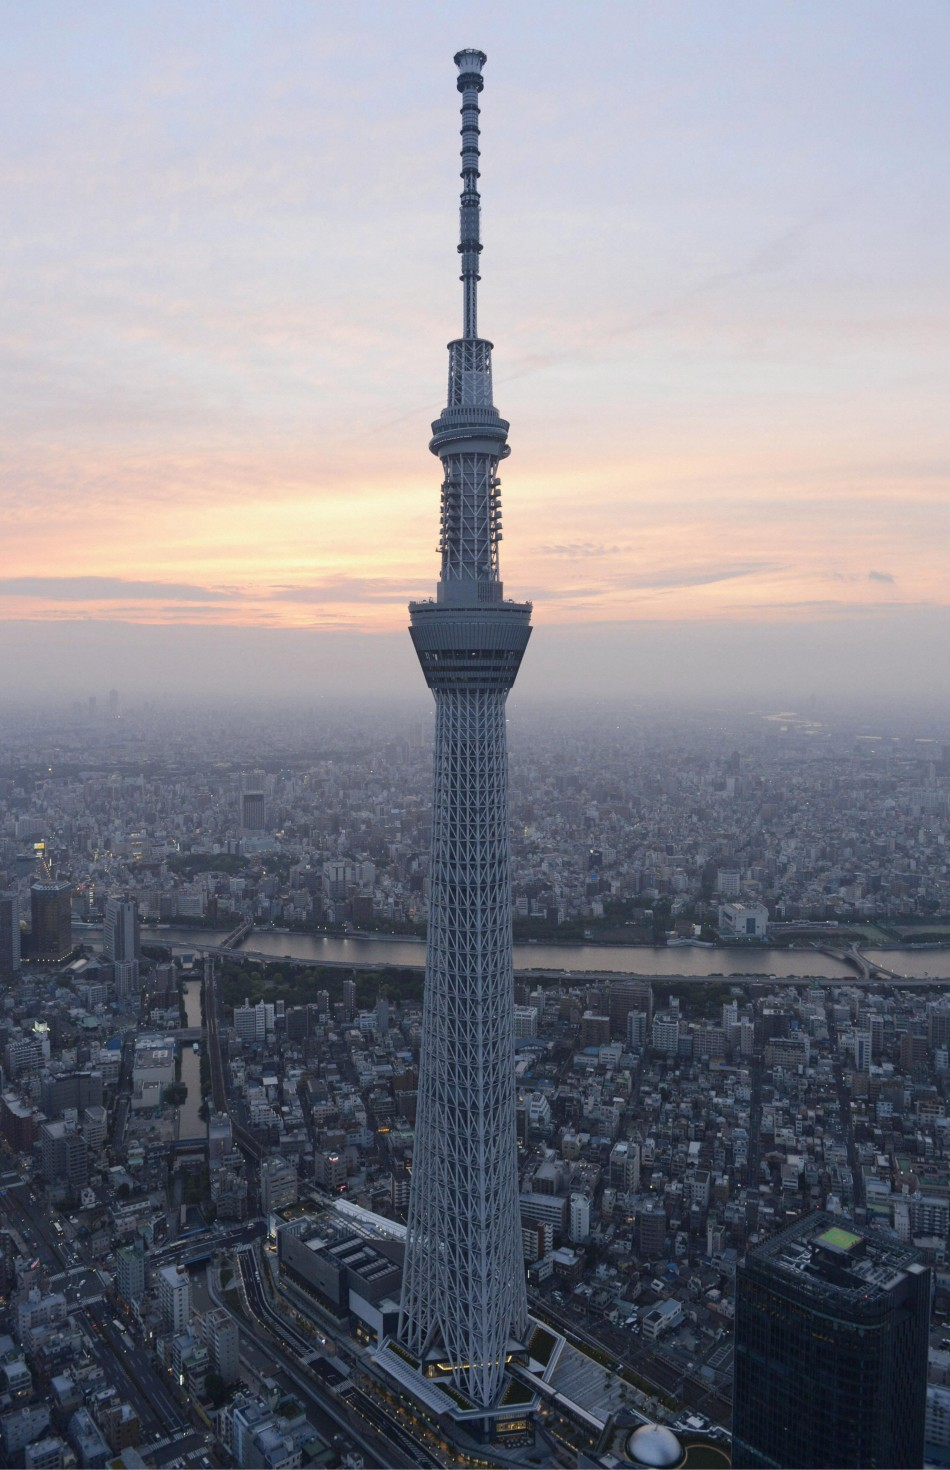 276459-tokyo-skytree-world-s-second-tallest-tower-opened